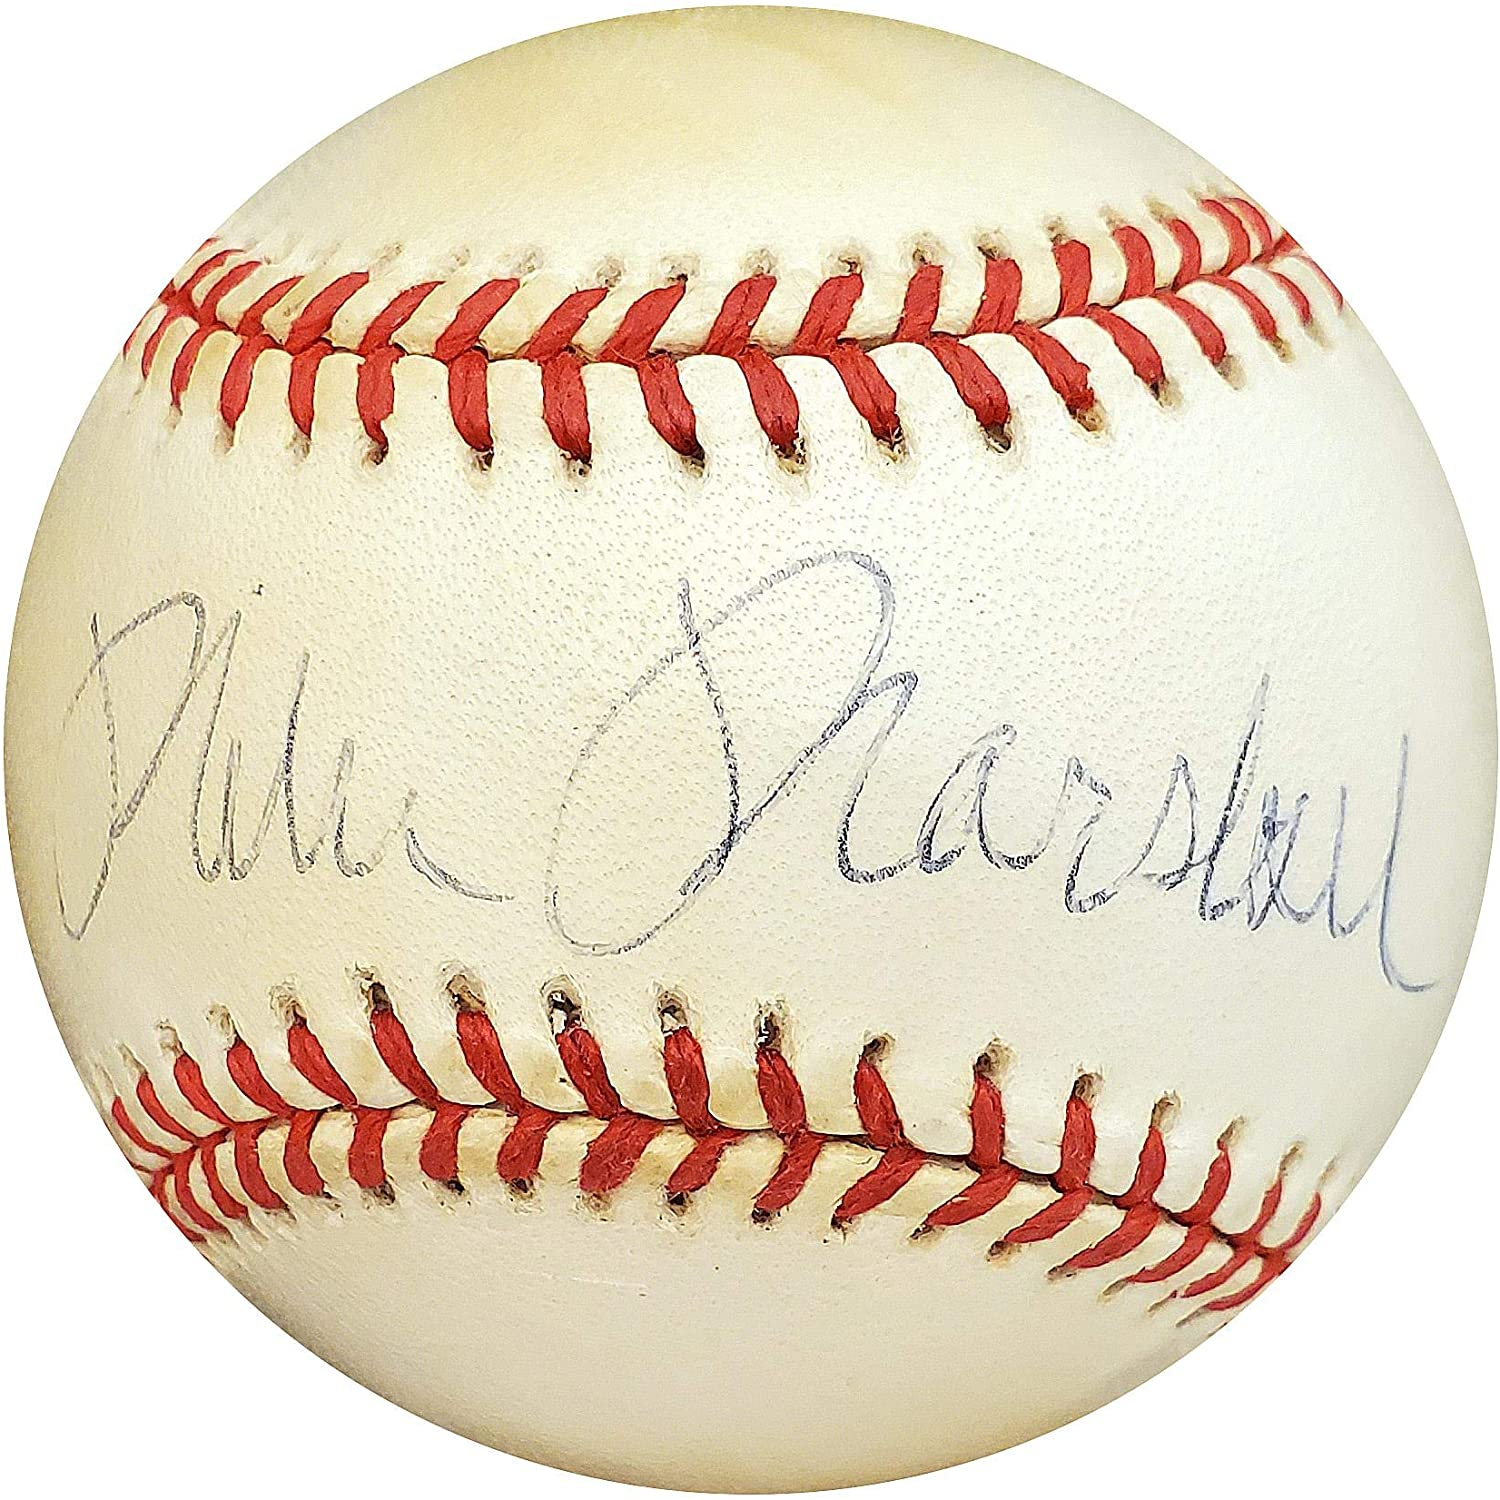 Mike Marshall Signed Ball - Dr Official AL #B14182 - JSA Certified - Autographed Baseballs